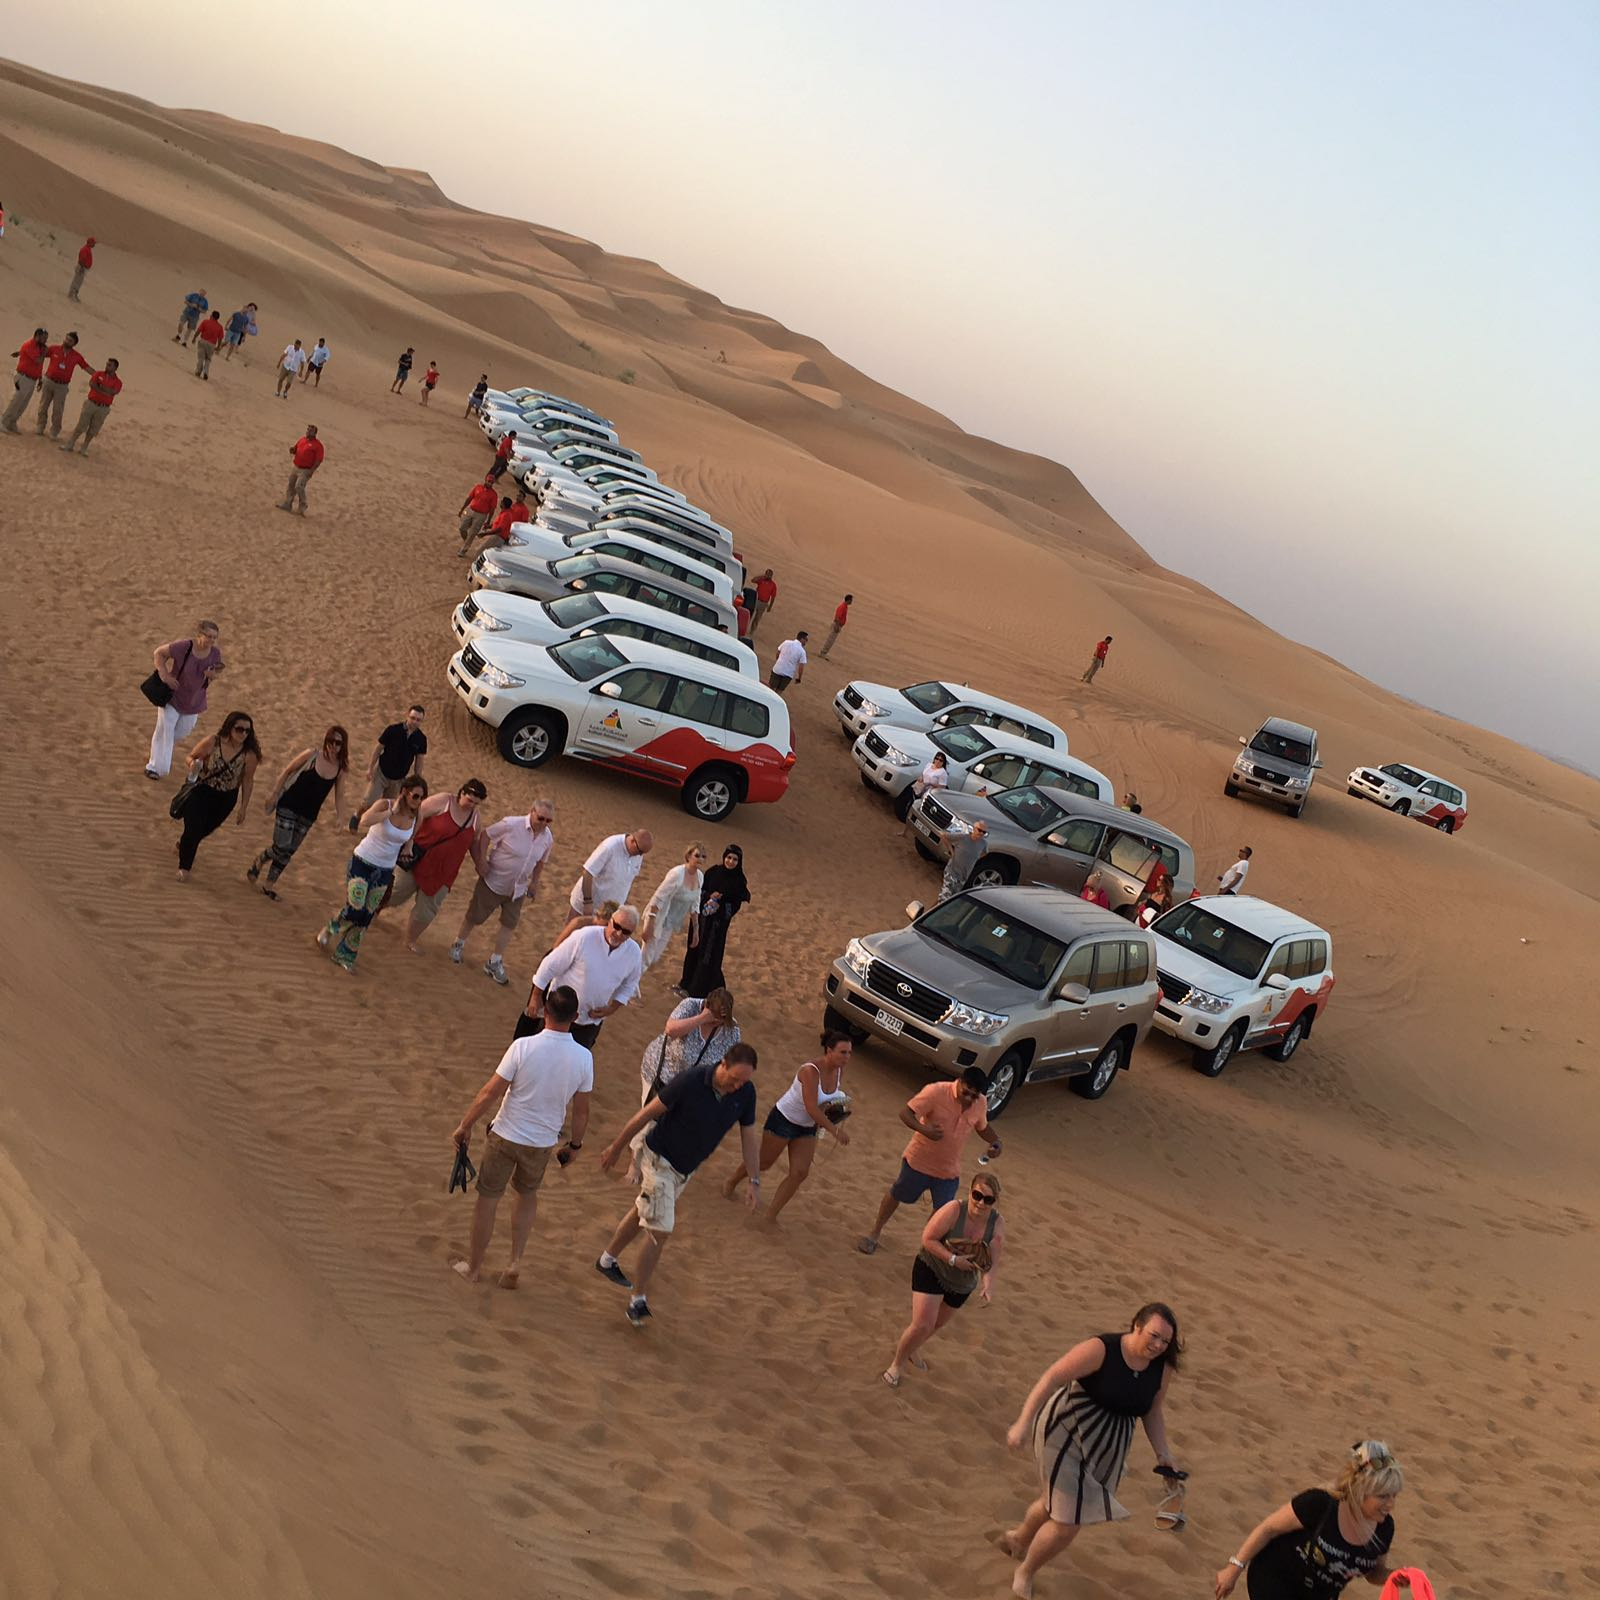 Dubai Desert - The Global Conference Dubai 2016